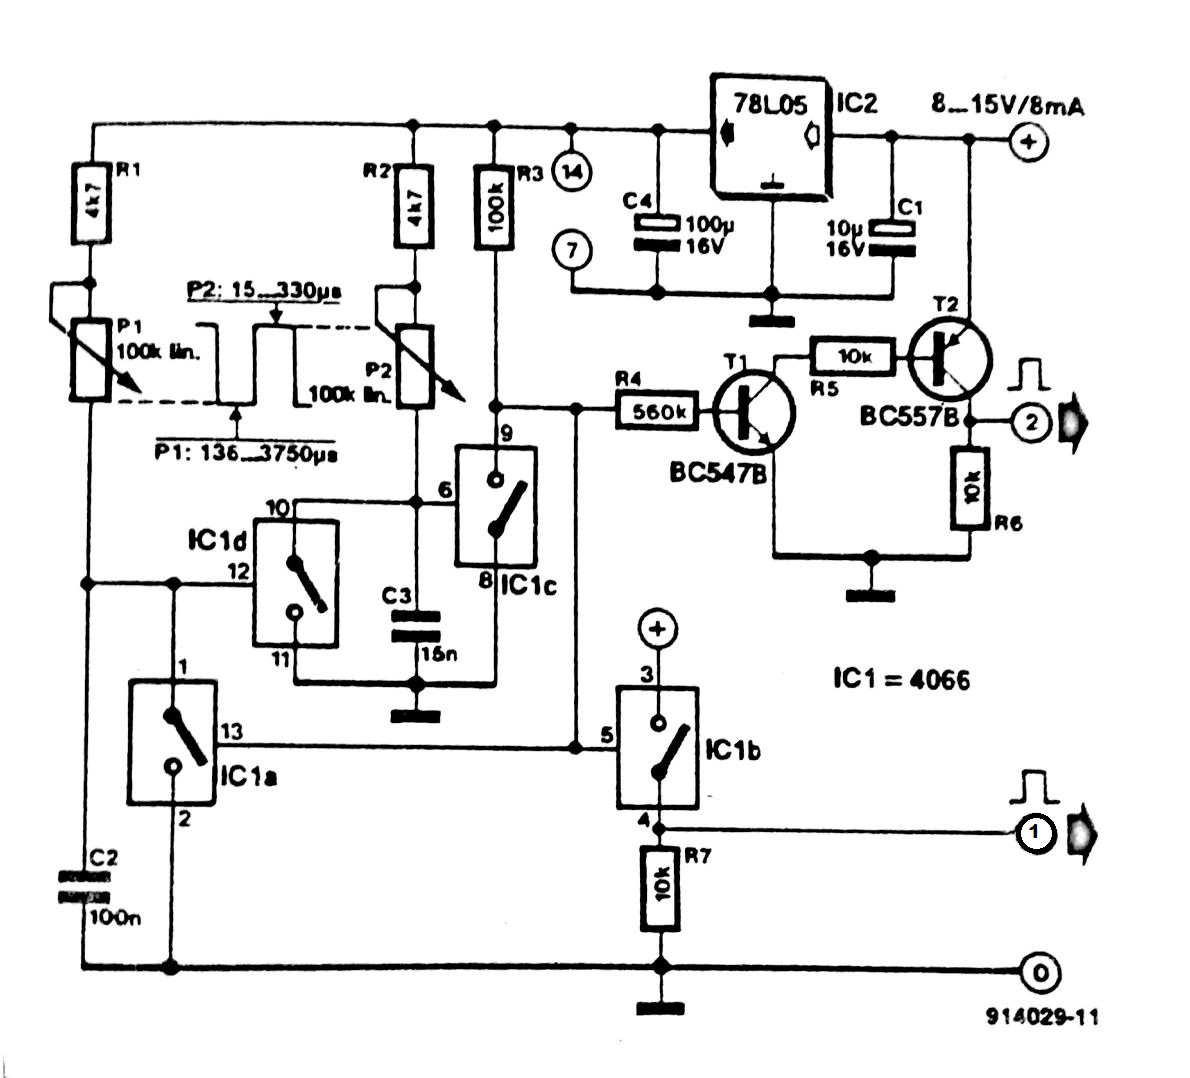 Pulse Generator With One 4066 Circuit Diagram 555 Timer Ramp Meanwhile Switch Ic 1c Is Closed So That C2 Discharged 1a Opened And C3 Charged Via P2 When The Voltage Across Has Reached A